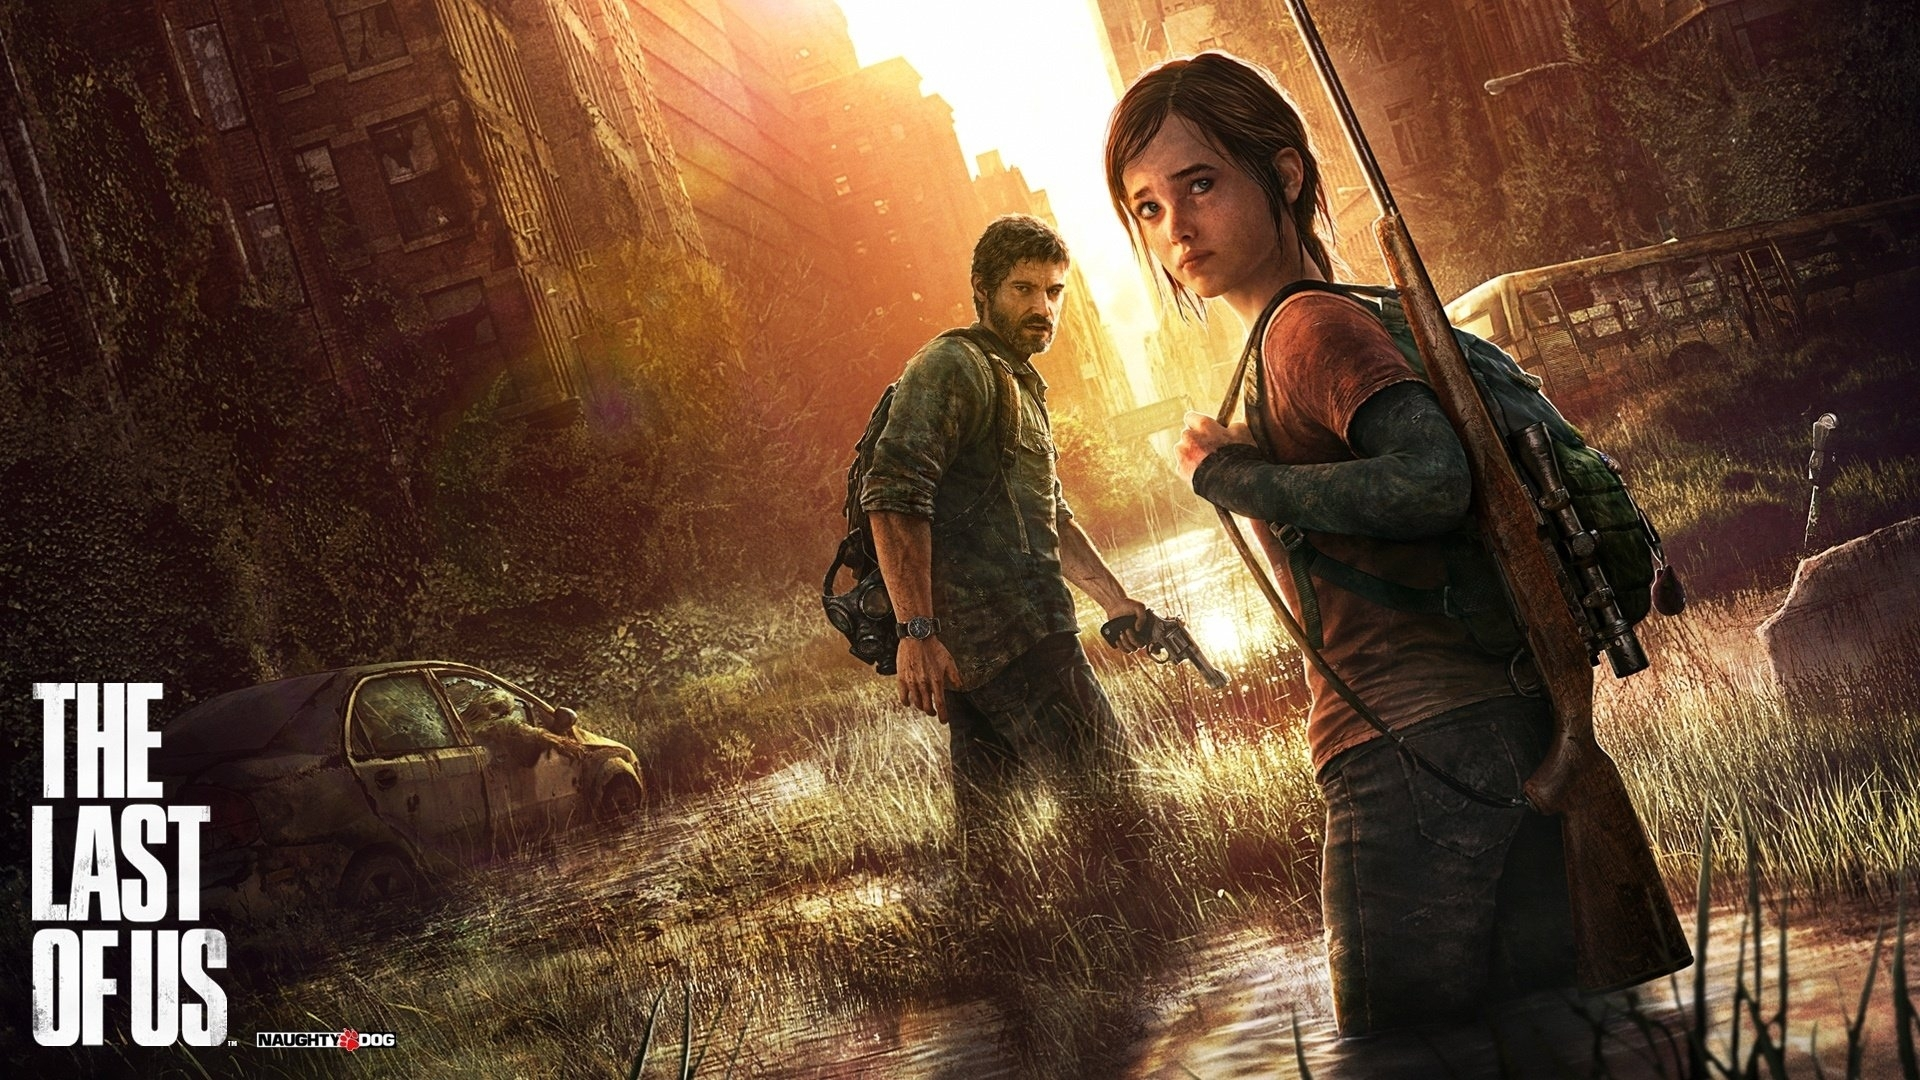 10 Best The Last Of Us Hd Wallpaper FULL HD 1080p For PC Background